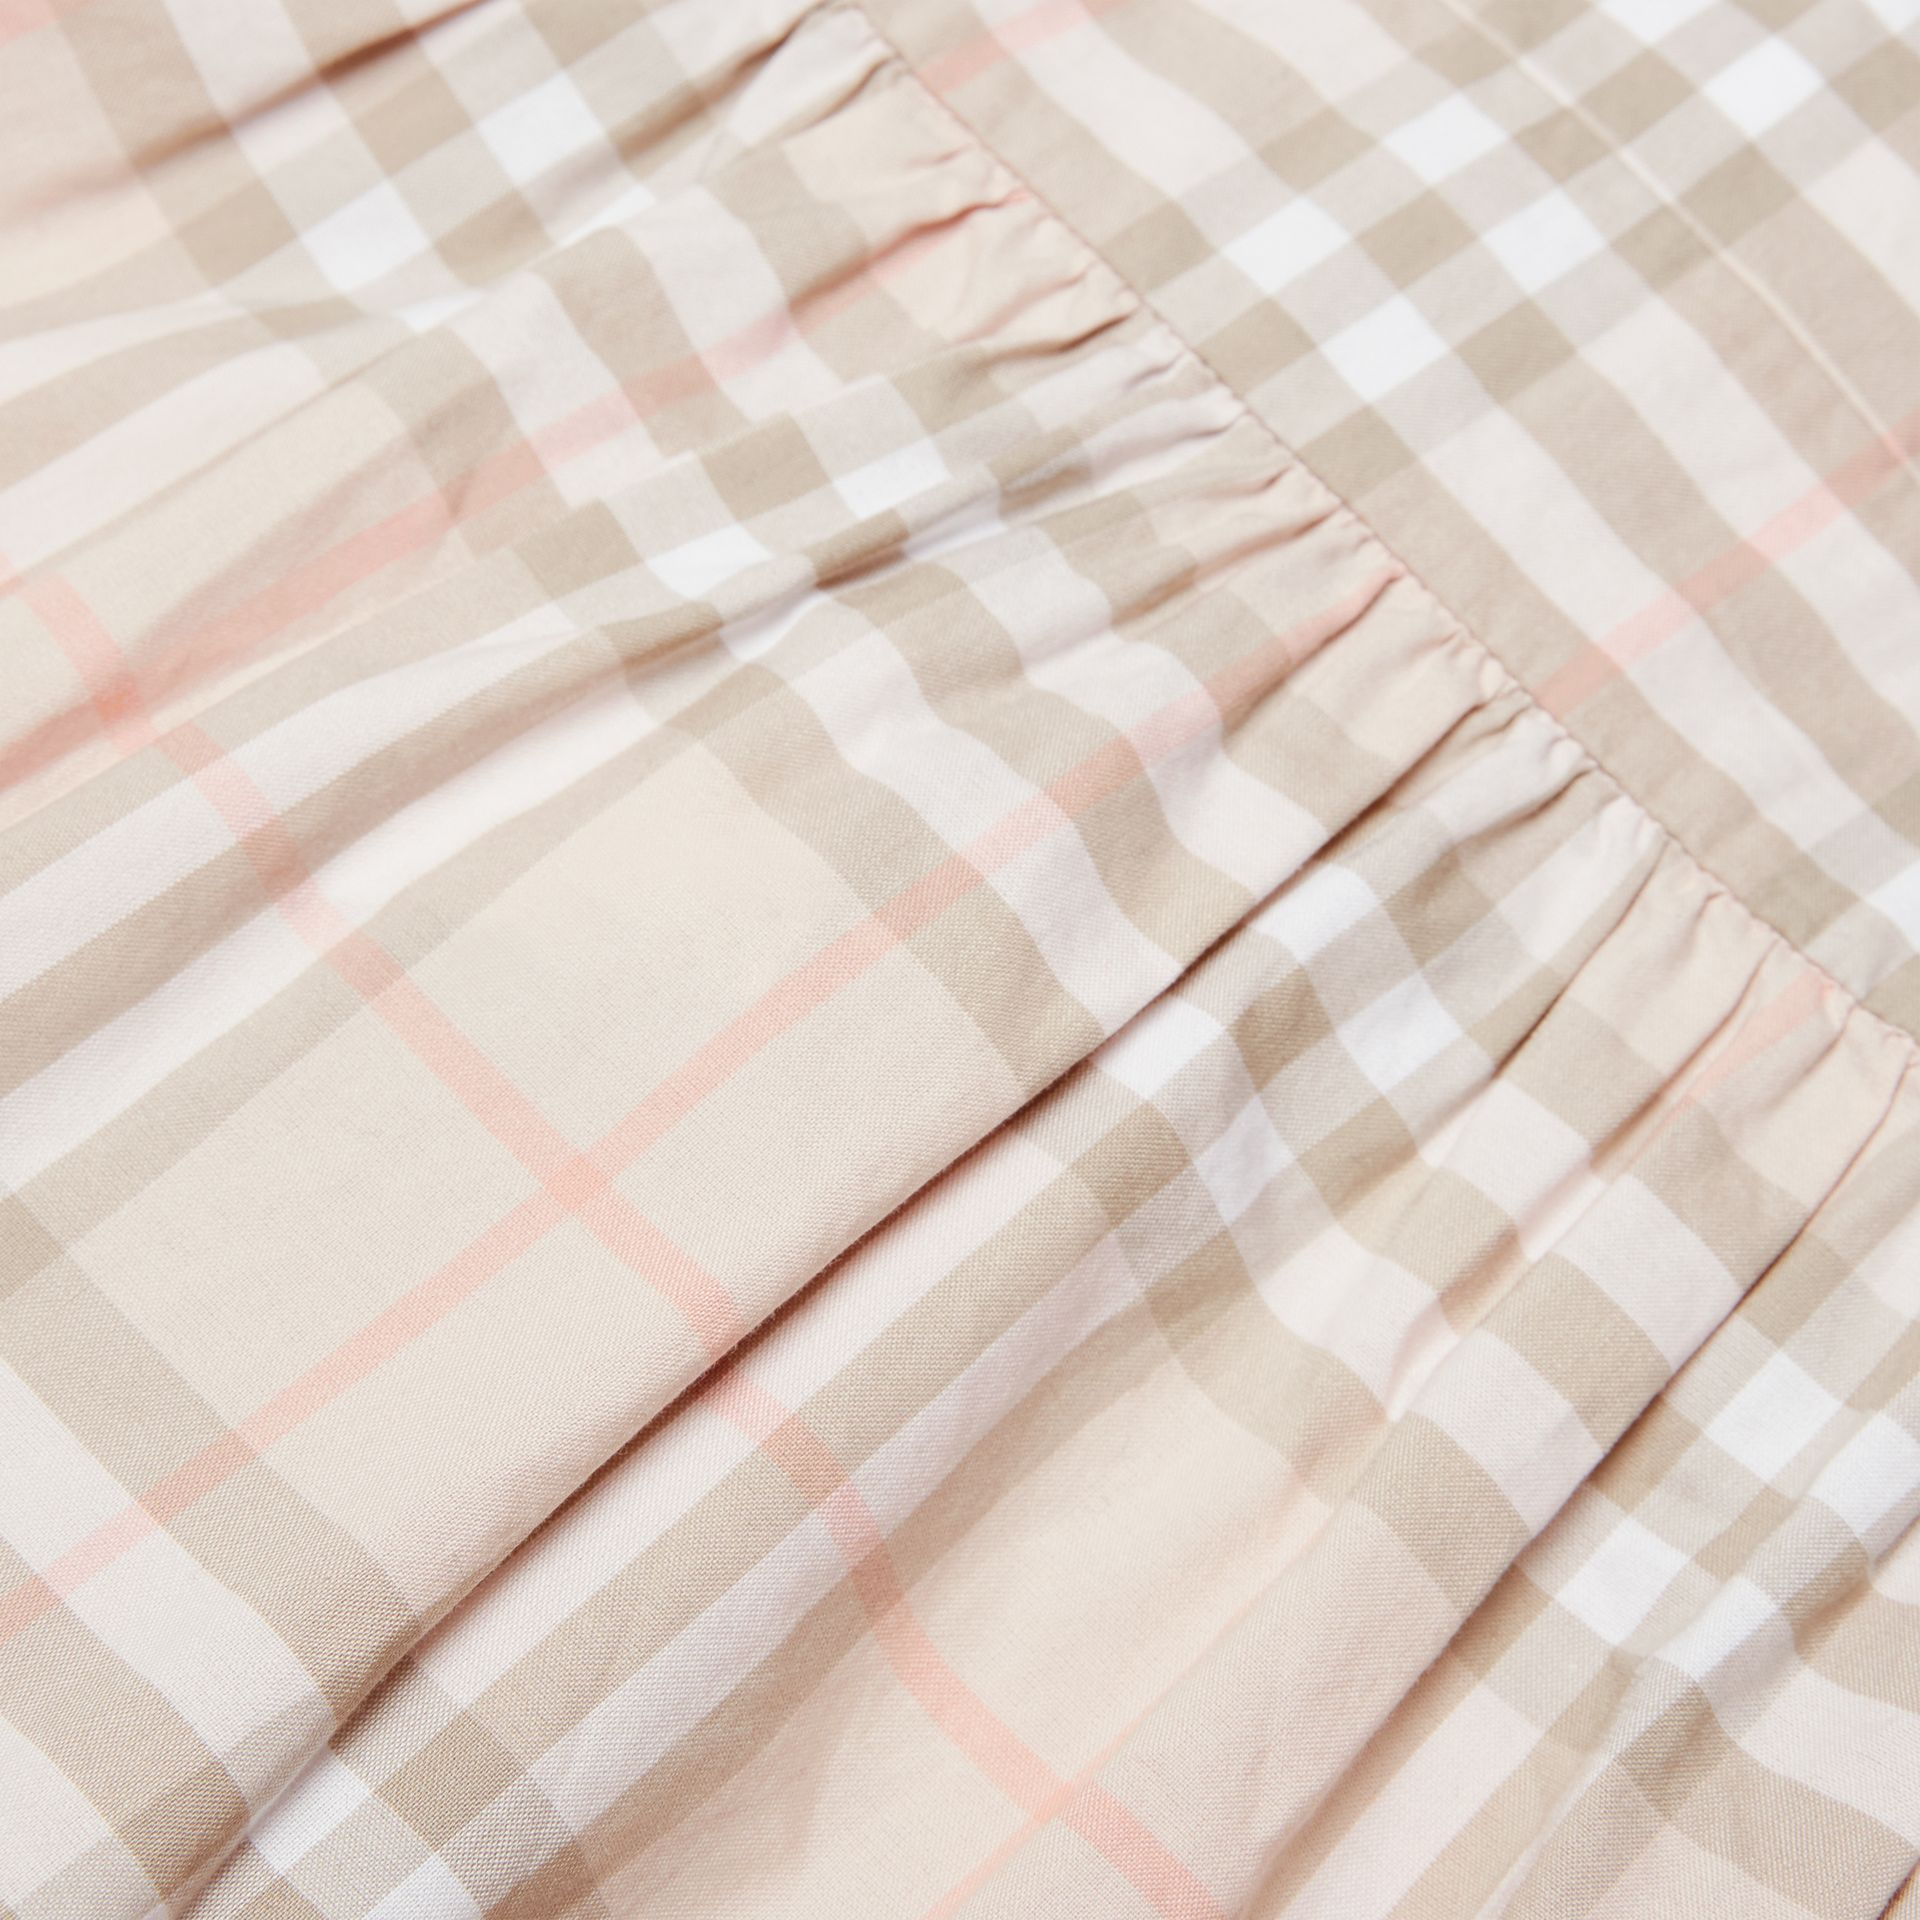 Ruffle Detail Check Cotton Dress in Pale Pink Apricot | Burberry - gallery image 1